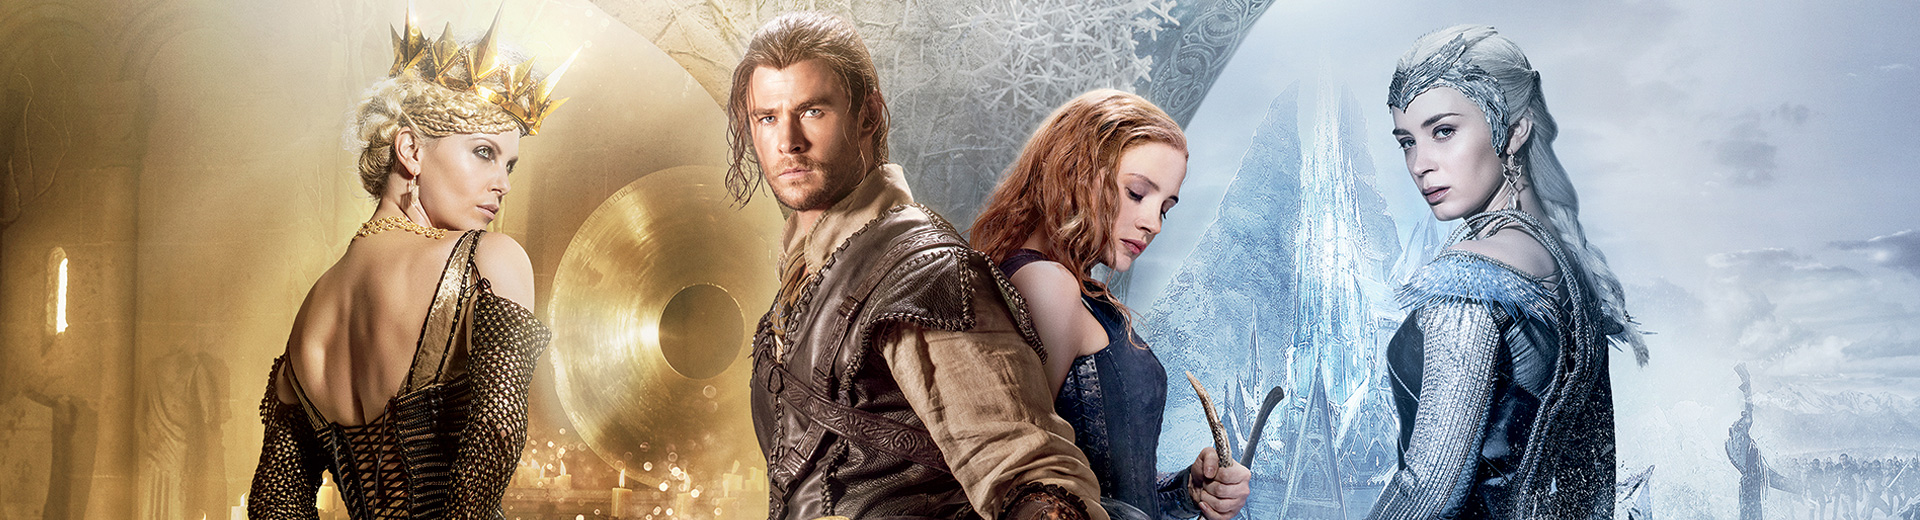 The Huntsman: Winter's War – available now on Virgin Movies